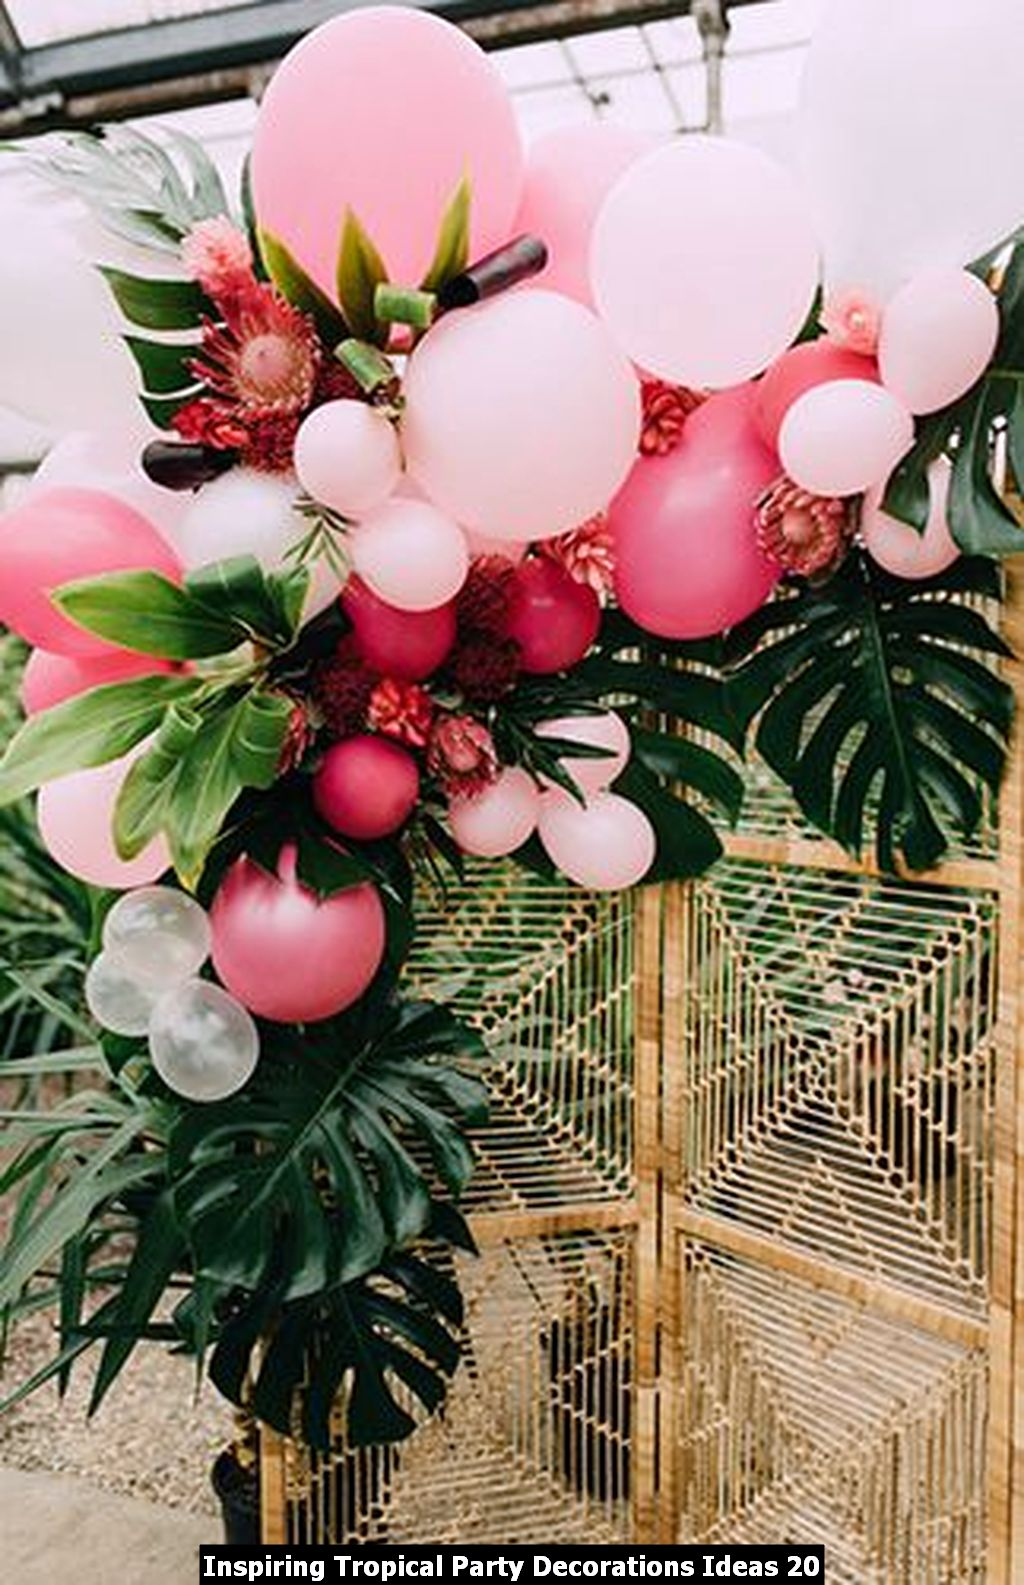 Inspiring Tropical Party Decorations Ideas 20